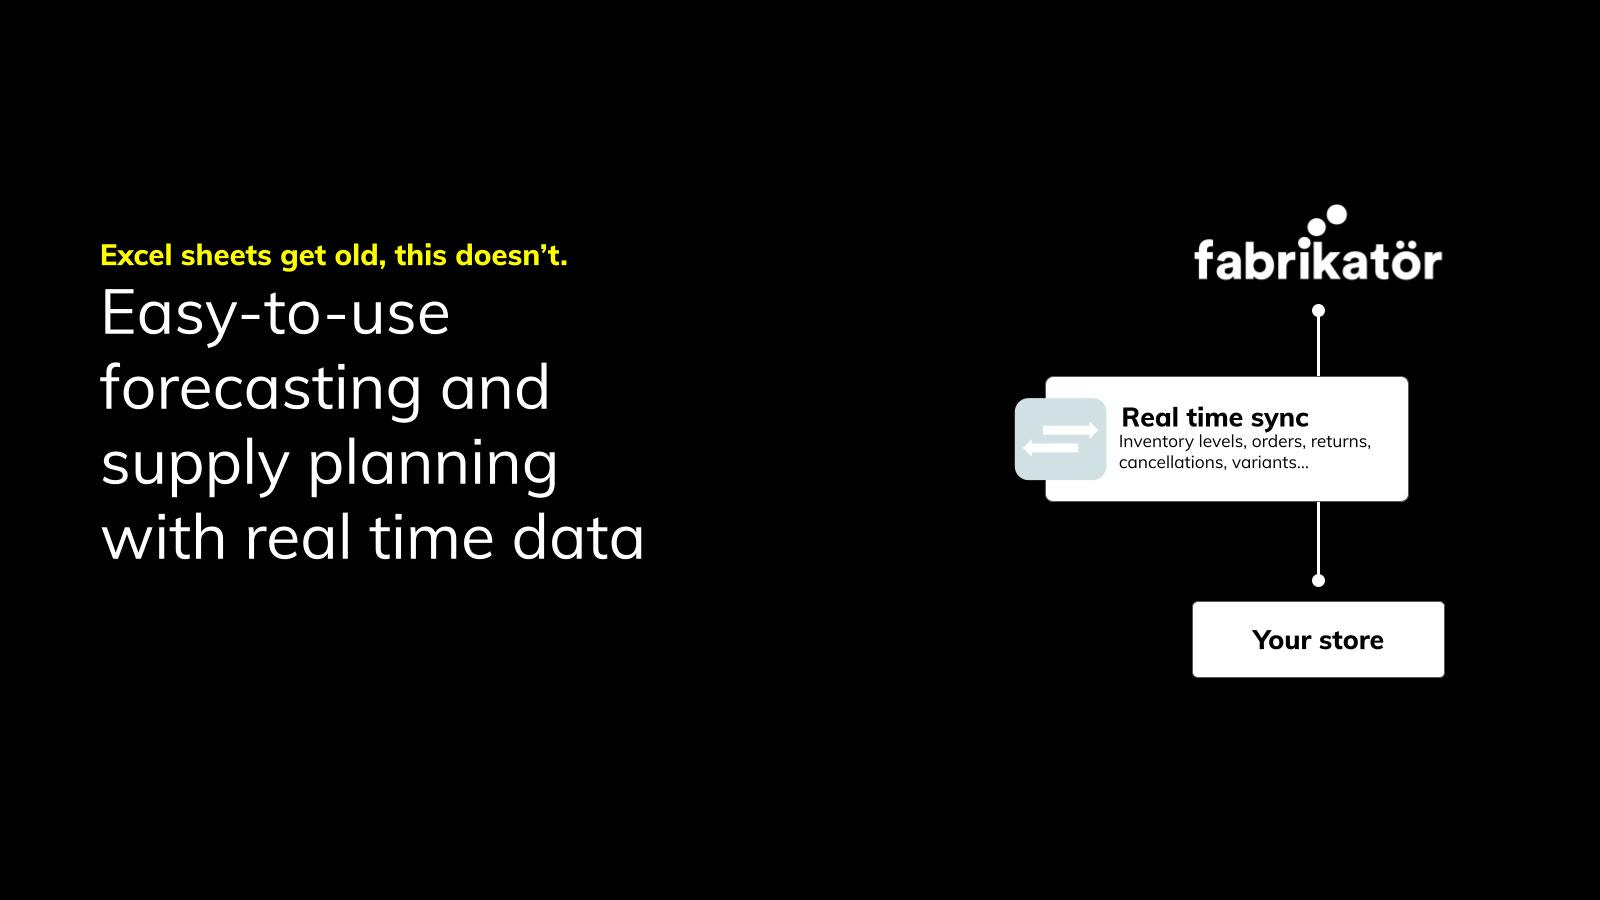 Easy-to-use forecasting and supply planning  with real time data